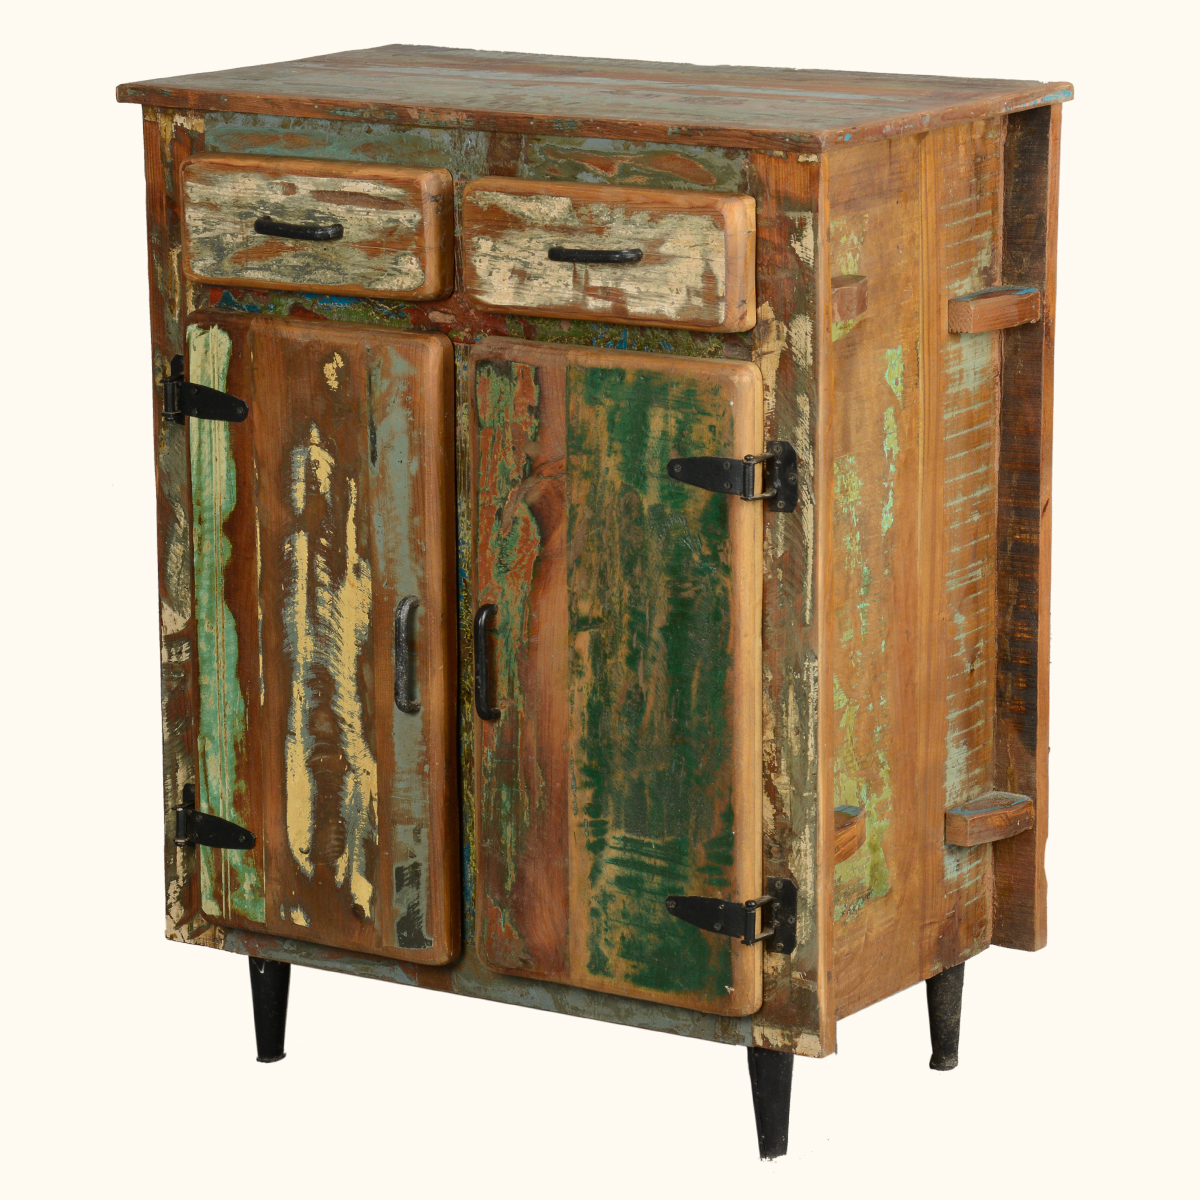 Utility Kitchen Cabinet Reclaimed Wood Rustic Kitchen Utility Storage Cabinet